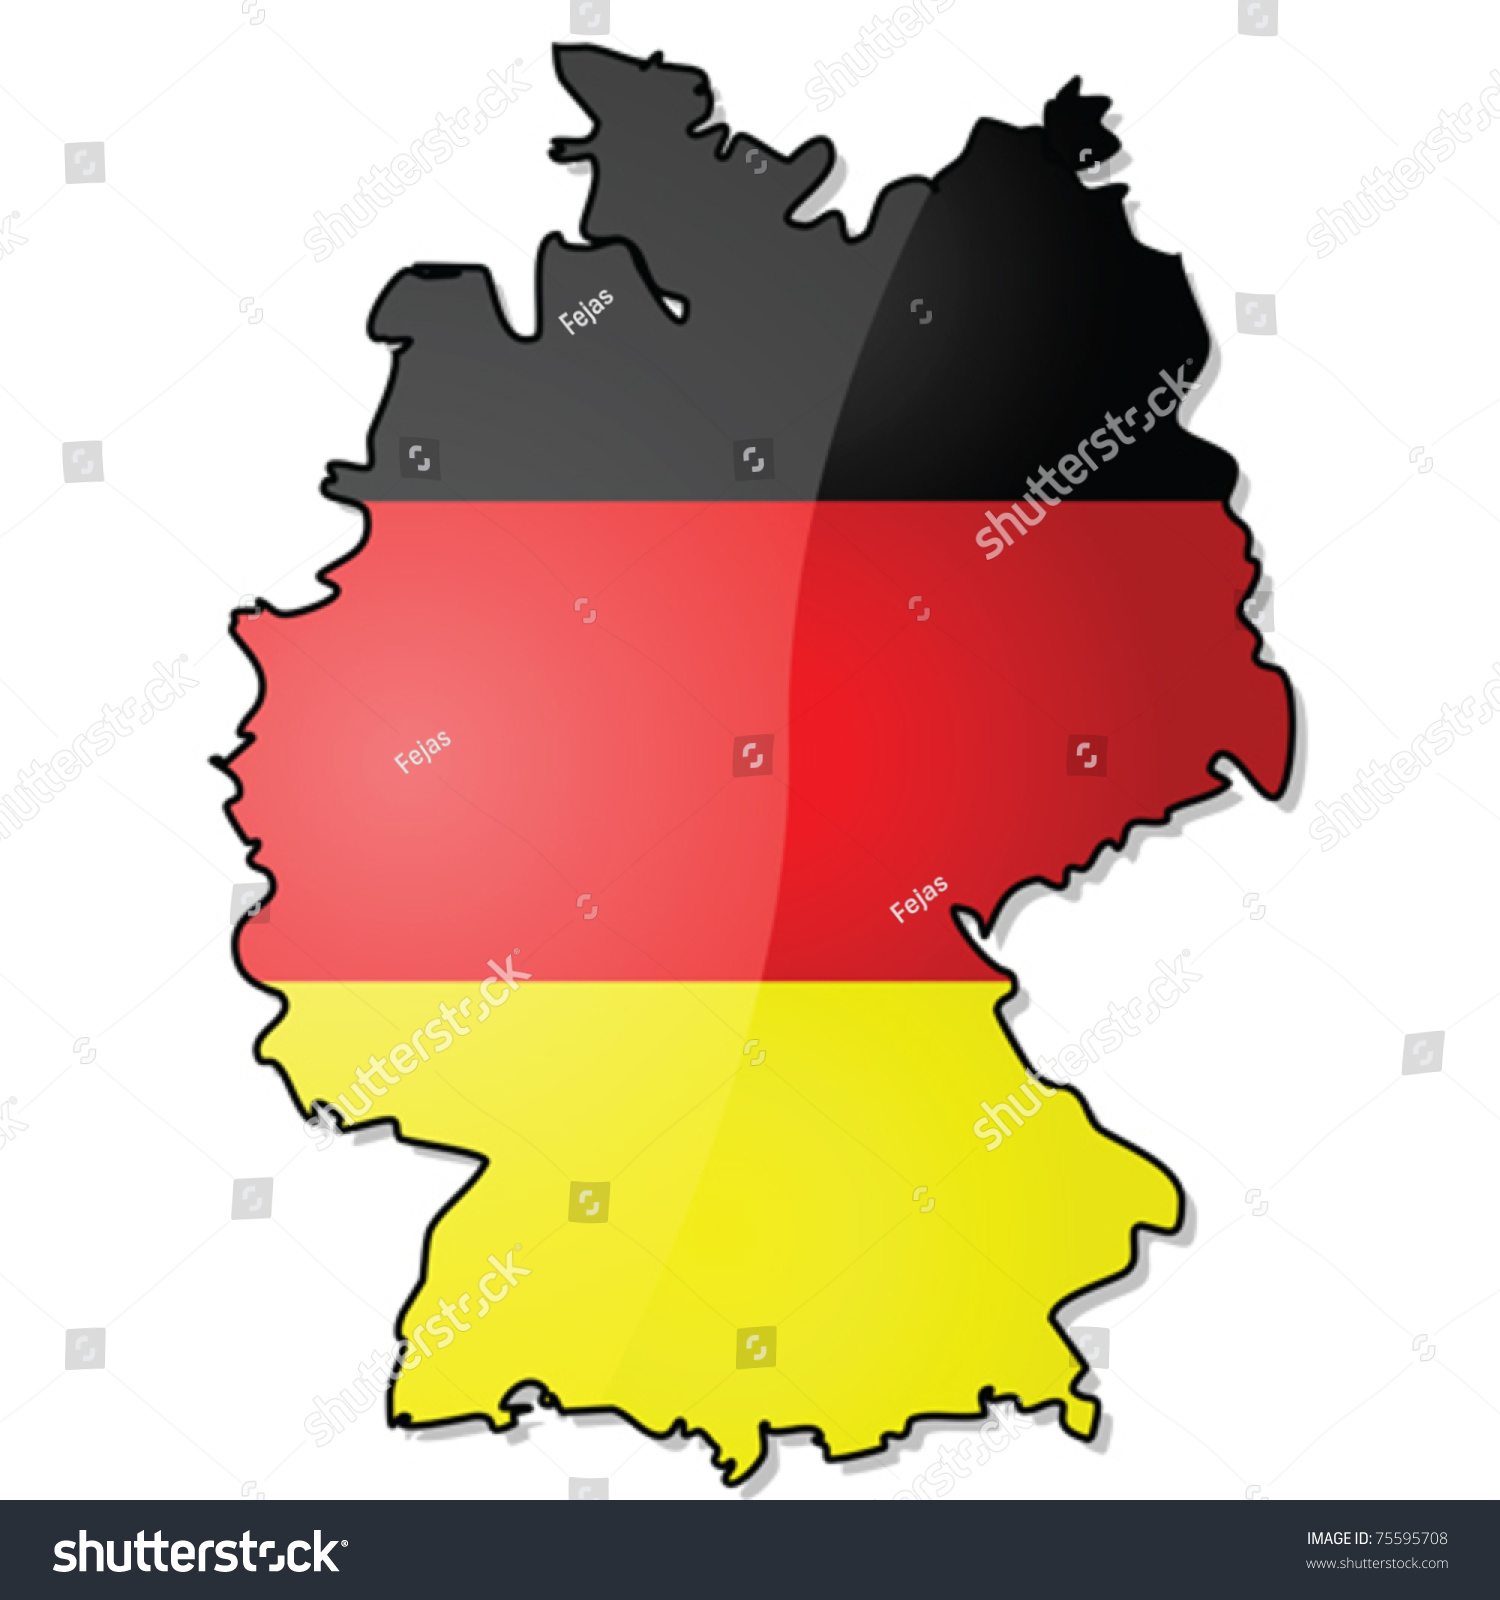 Glossy Vector Illustration Showing Map Germany Vector – Divided Germany Map